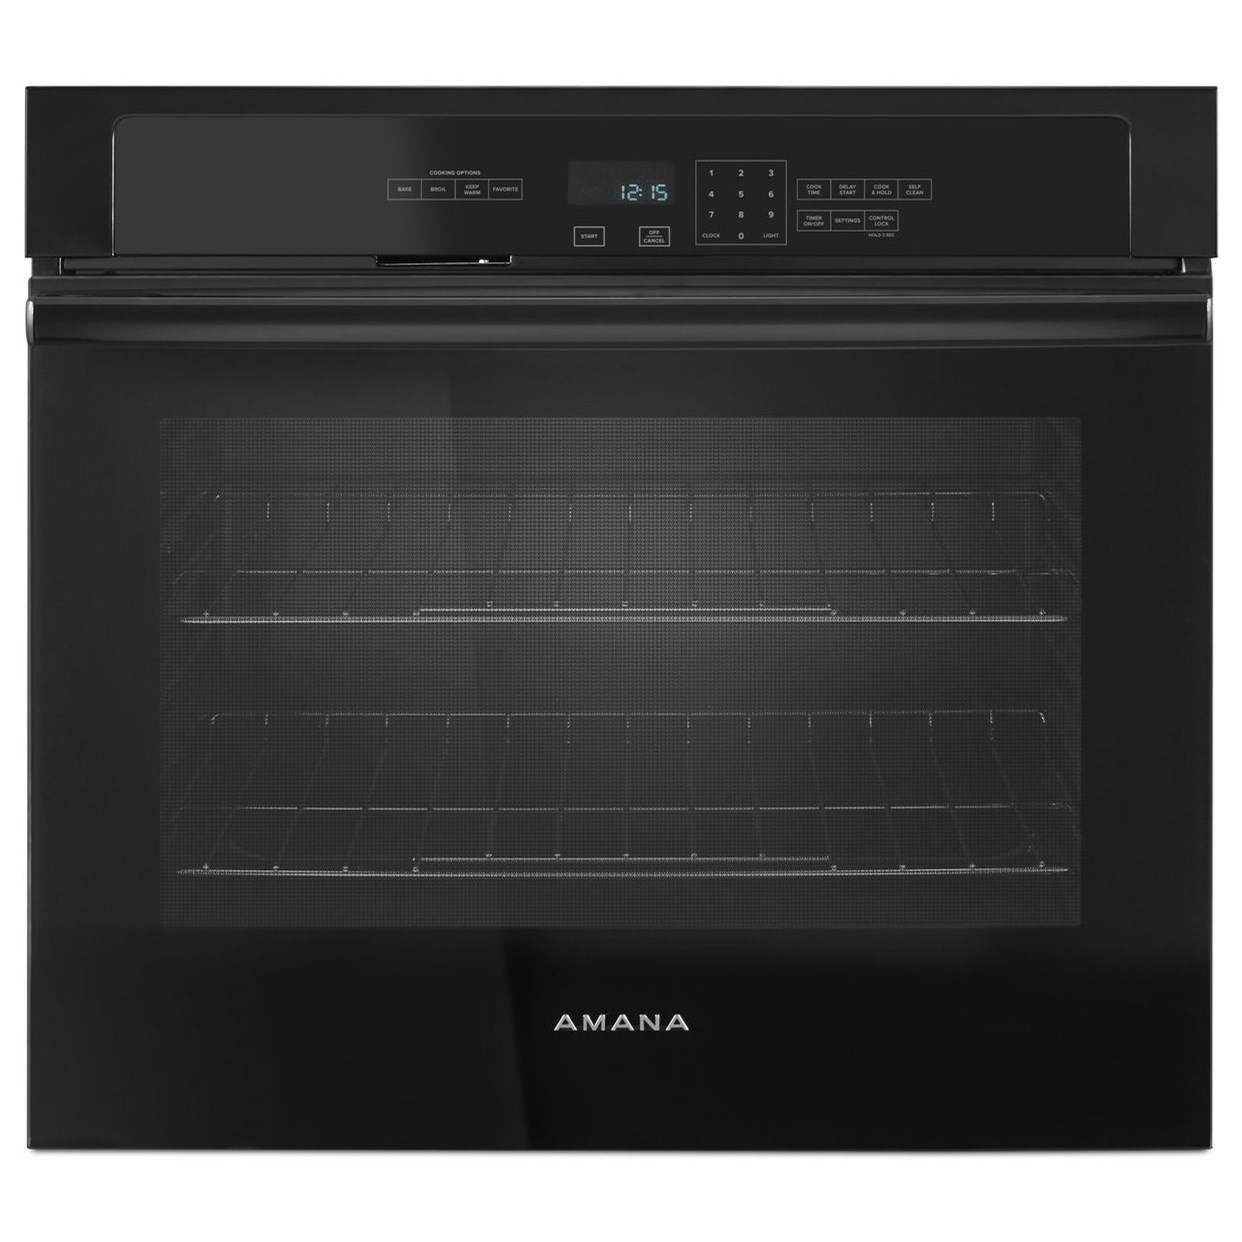 Amana Electric Wall Ovens - Amana 30-inch 5.0 Cu. Ft. Amana® Wall Oven - Item Number: AWO6313SFB